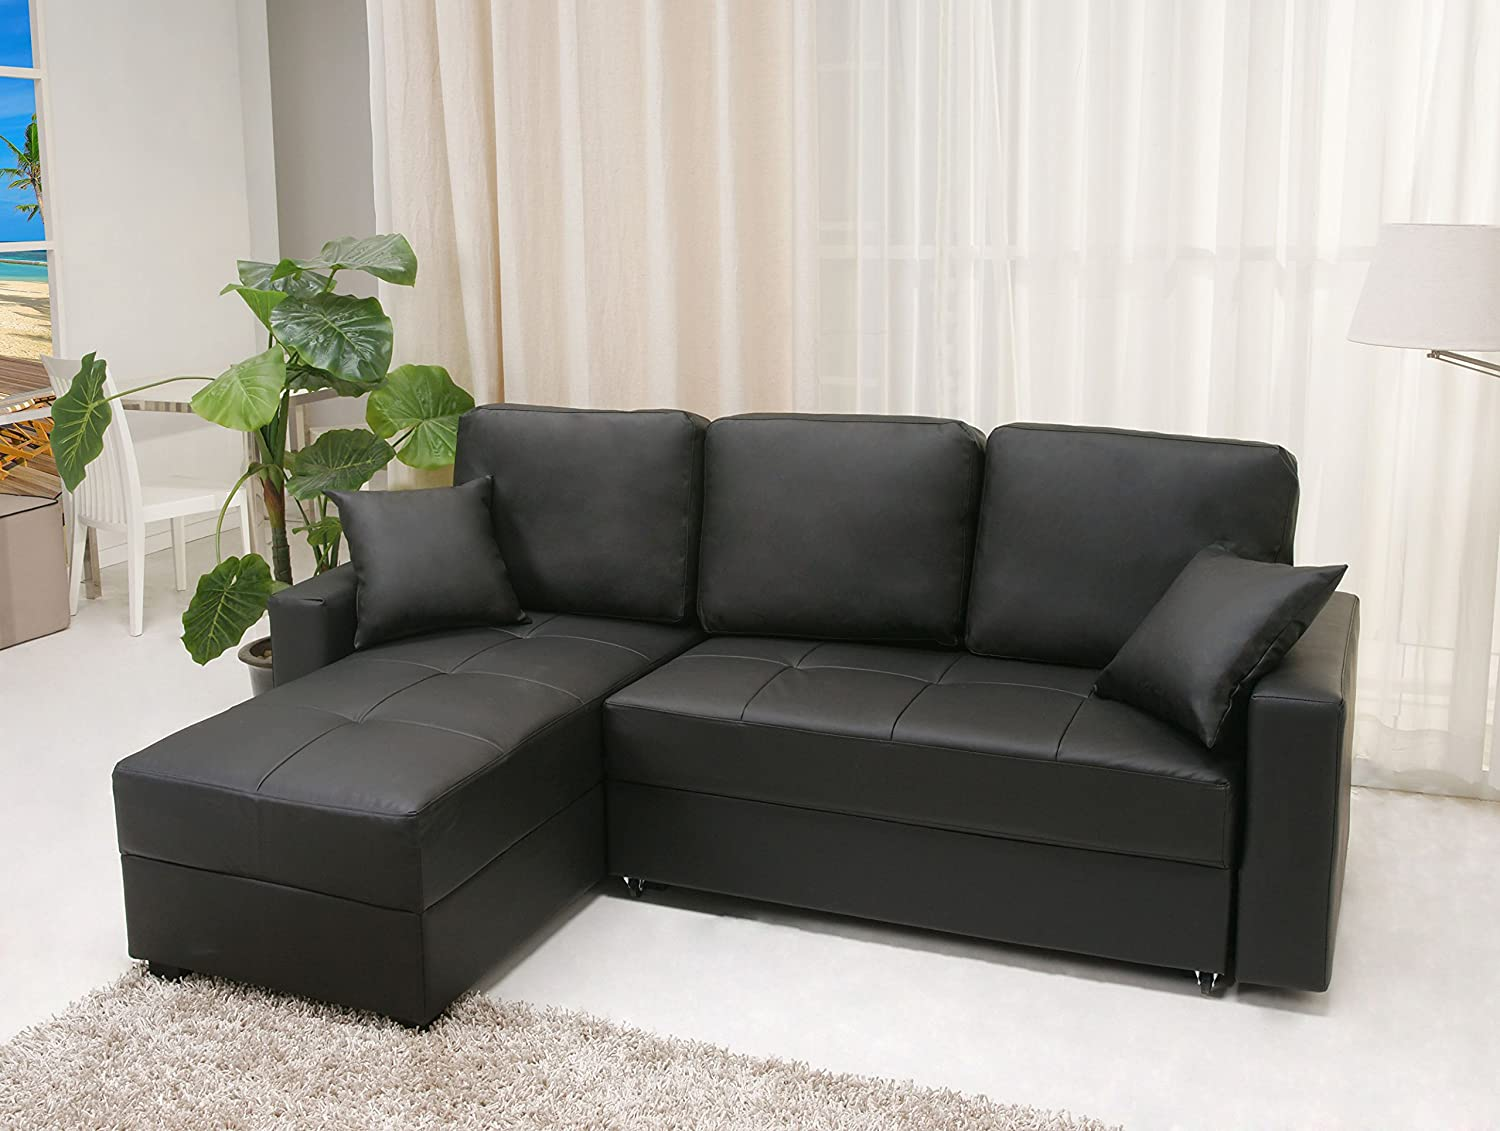 Amazon.com Gold Sparrow Aspen Convertible Sectional Storage Sofa Bed Black Home u0026 Kitchen : sectional couch bed - Sectionals, Sofas & Couches